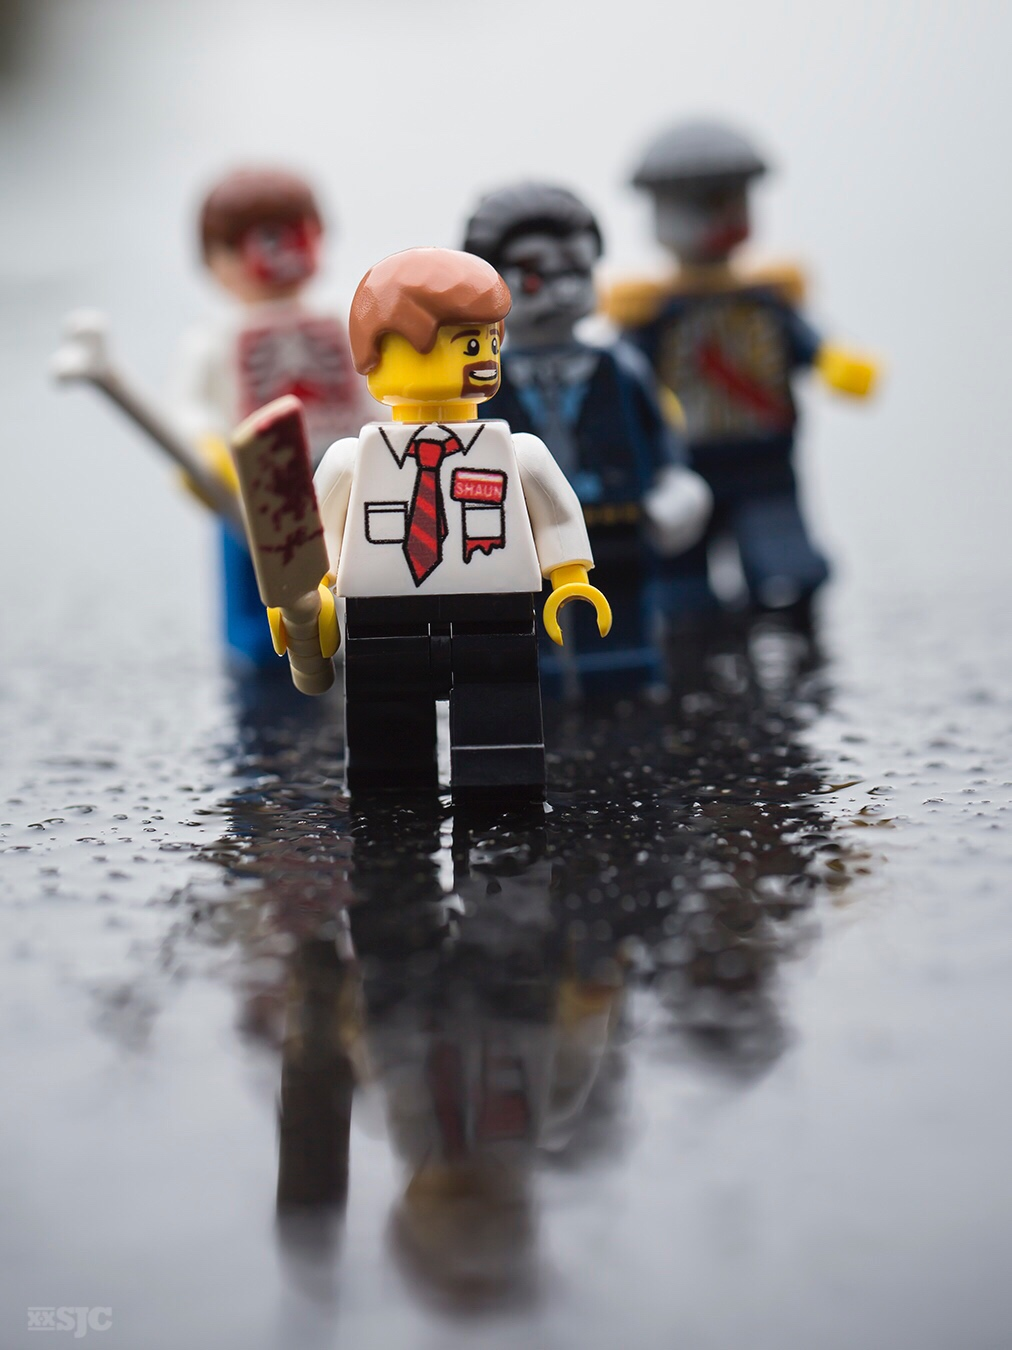 Lego-Shaun-Zombies-Legography-toy